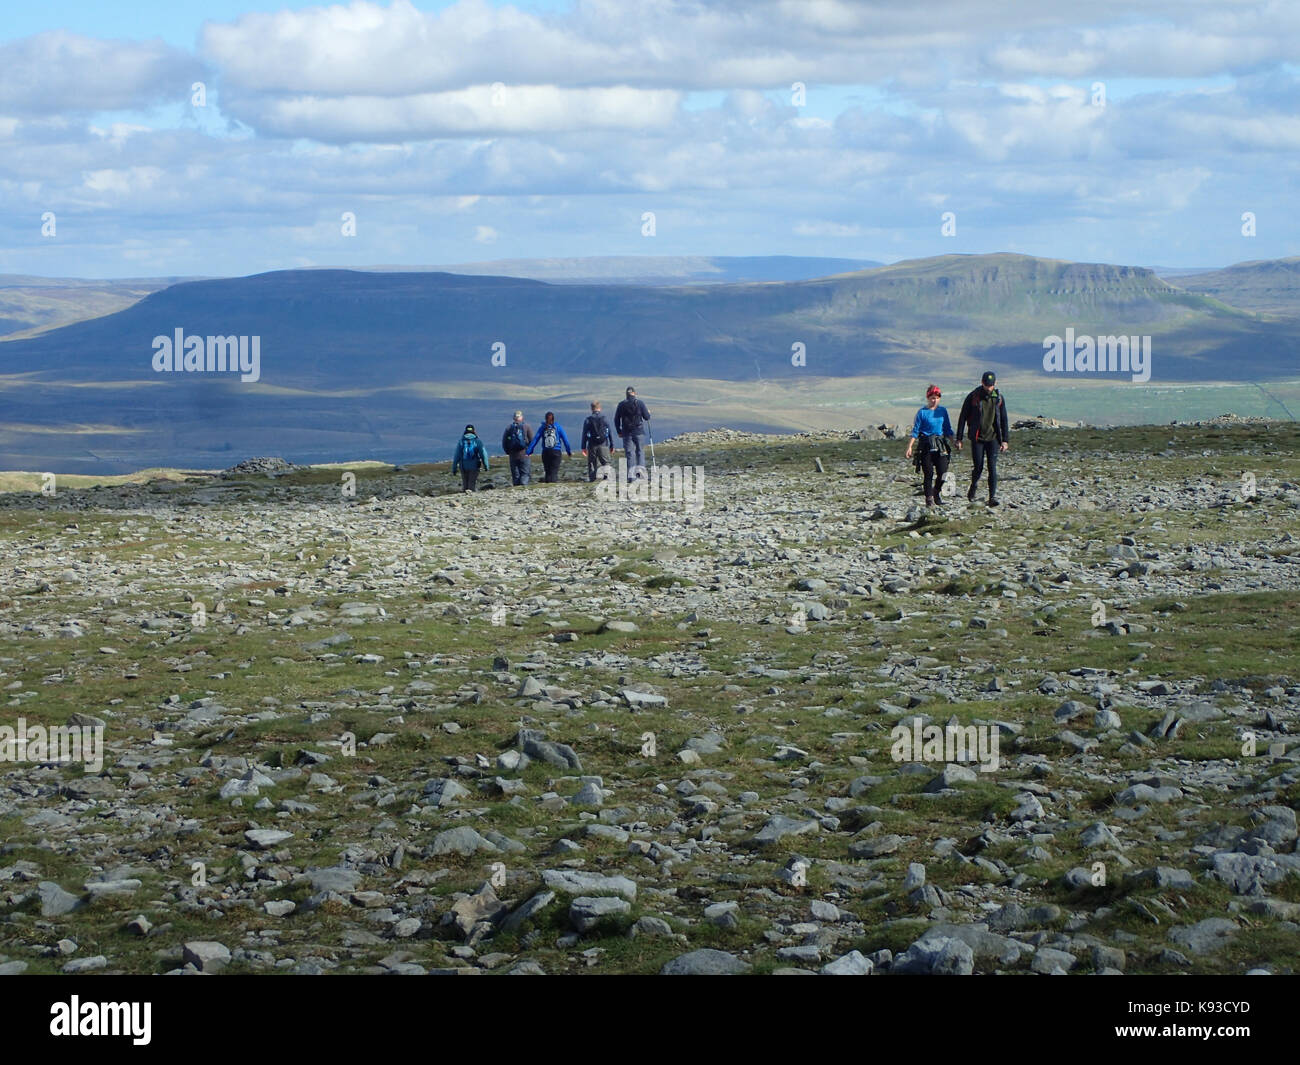 Penyghent from Ingleborough, two of the Yorkshire Three Peaks, Yorkshire Dales National Park, Yorkshire, England - Stock Image